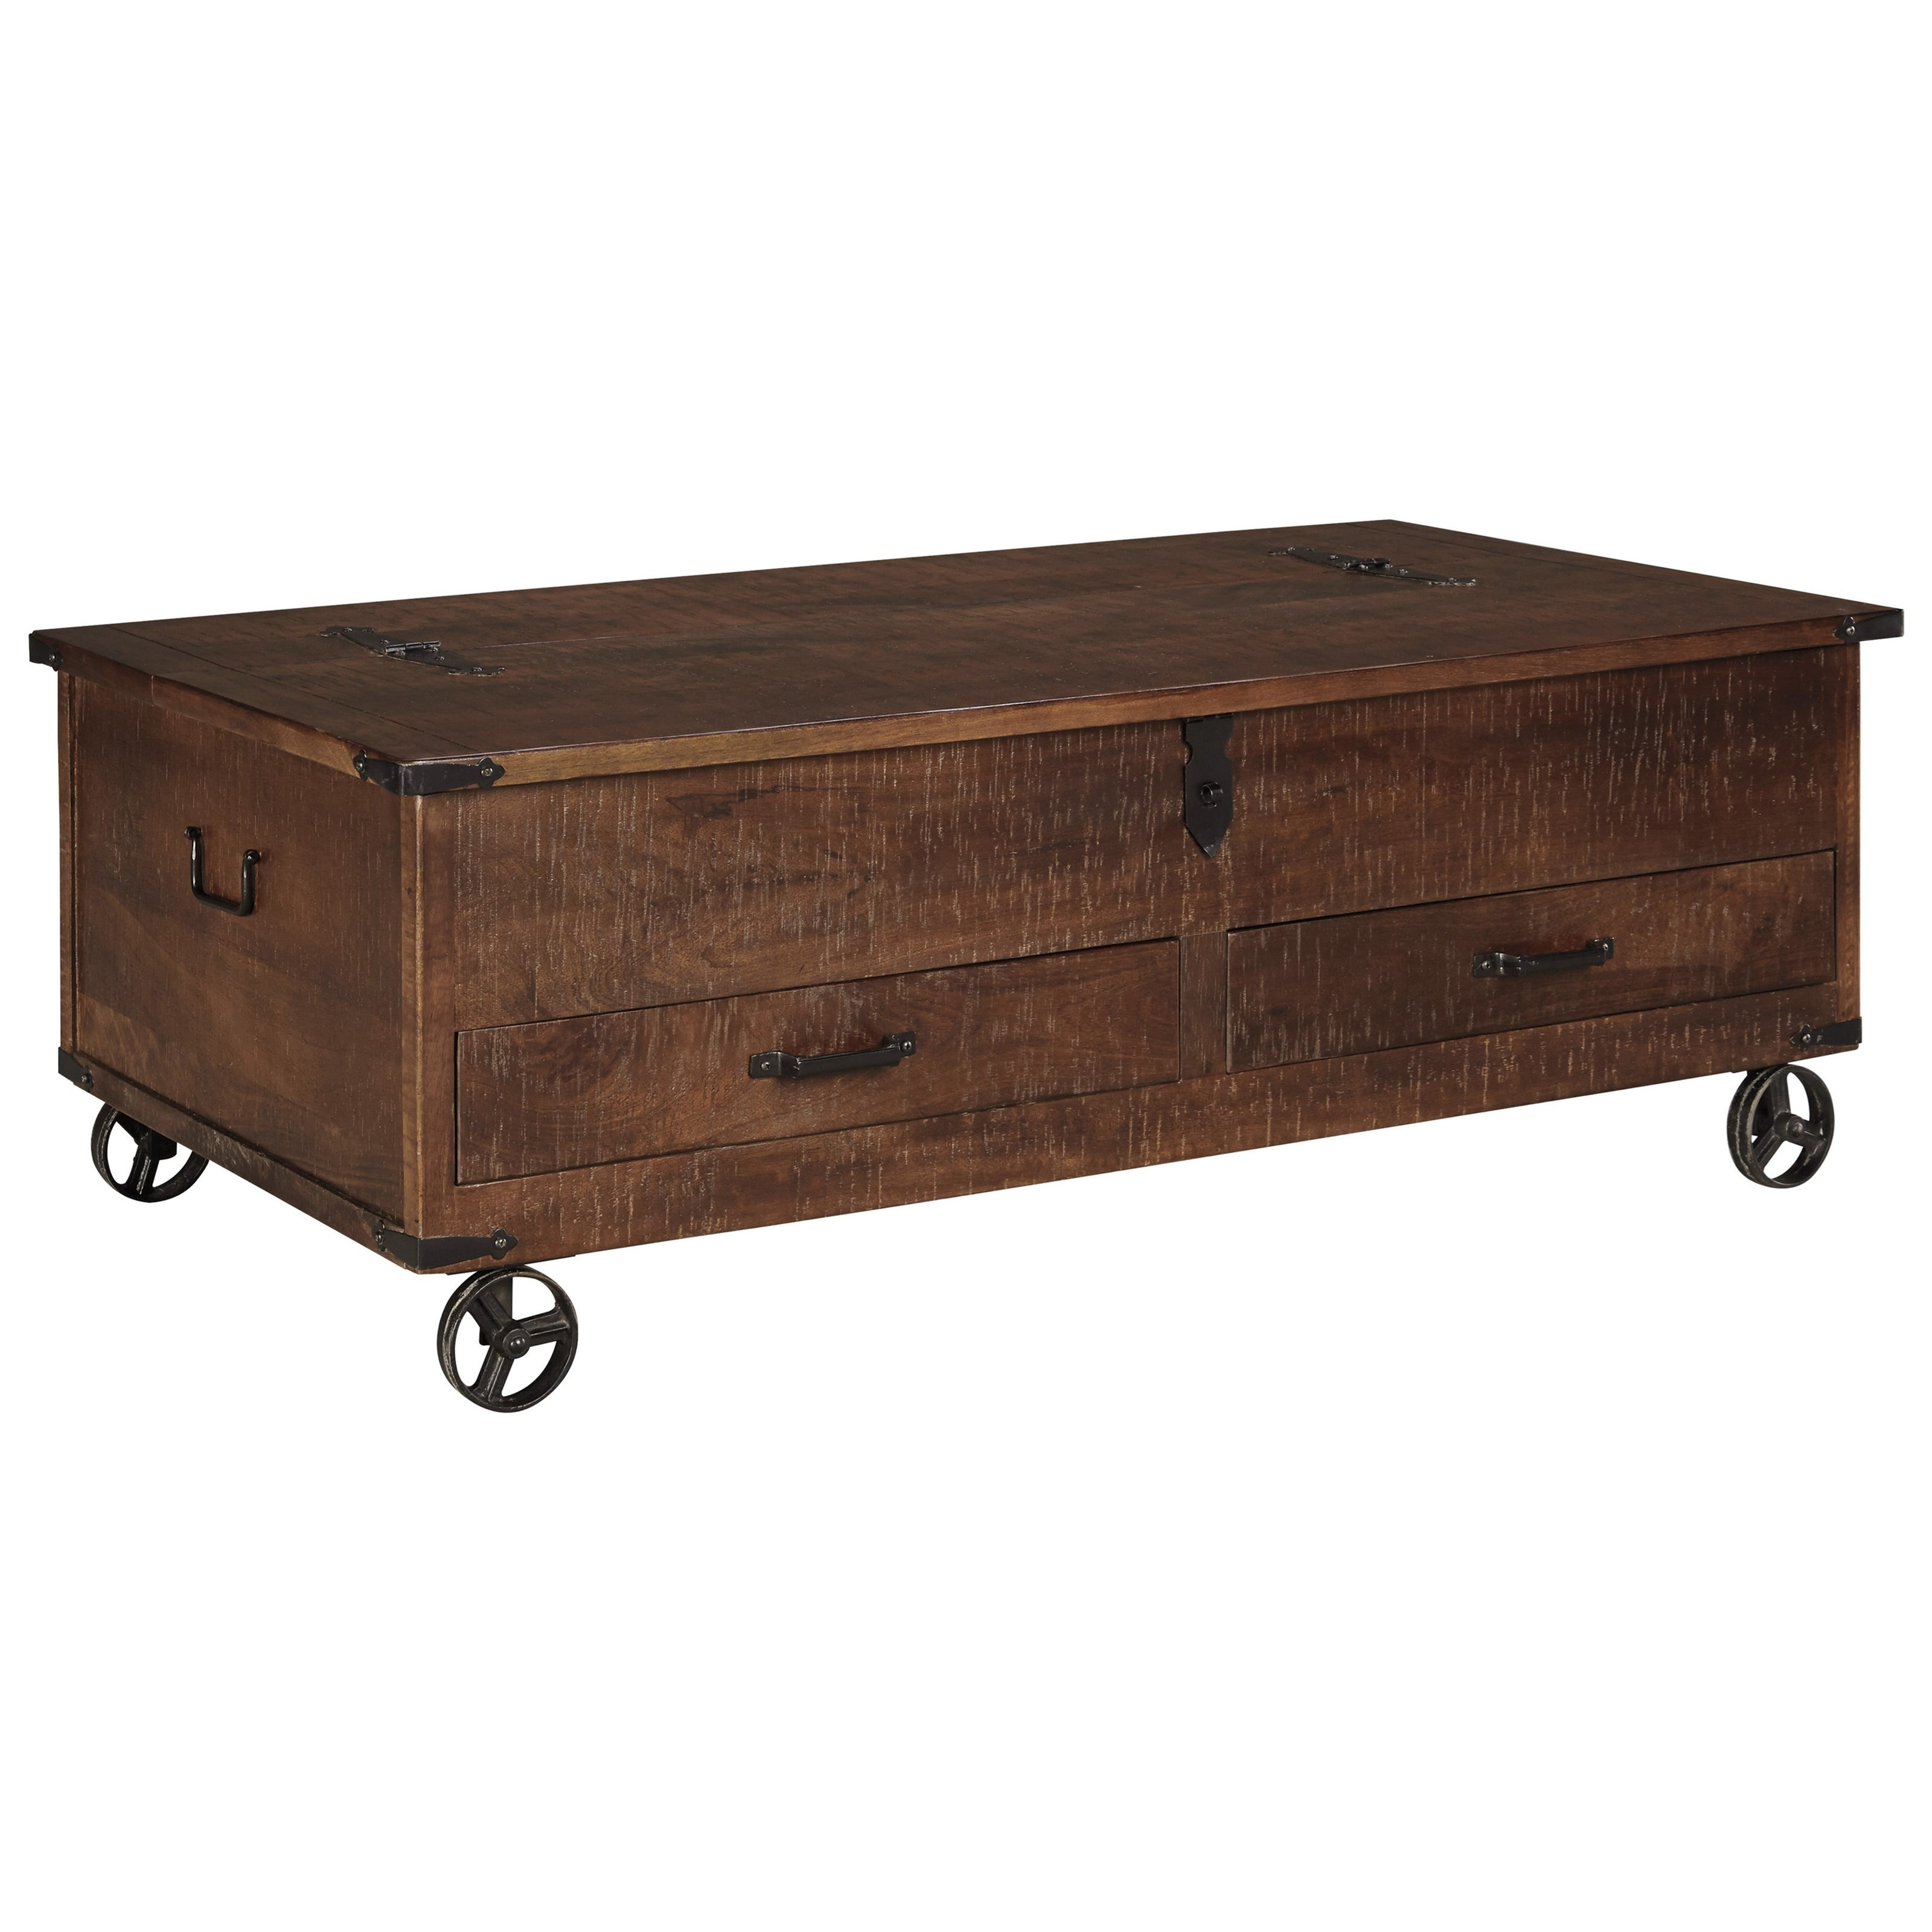 Signature Design By Ashley Norlandon Rustic Storage Cocktail Table With  Hinged Top And Industrial Wheels